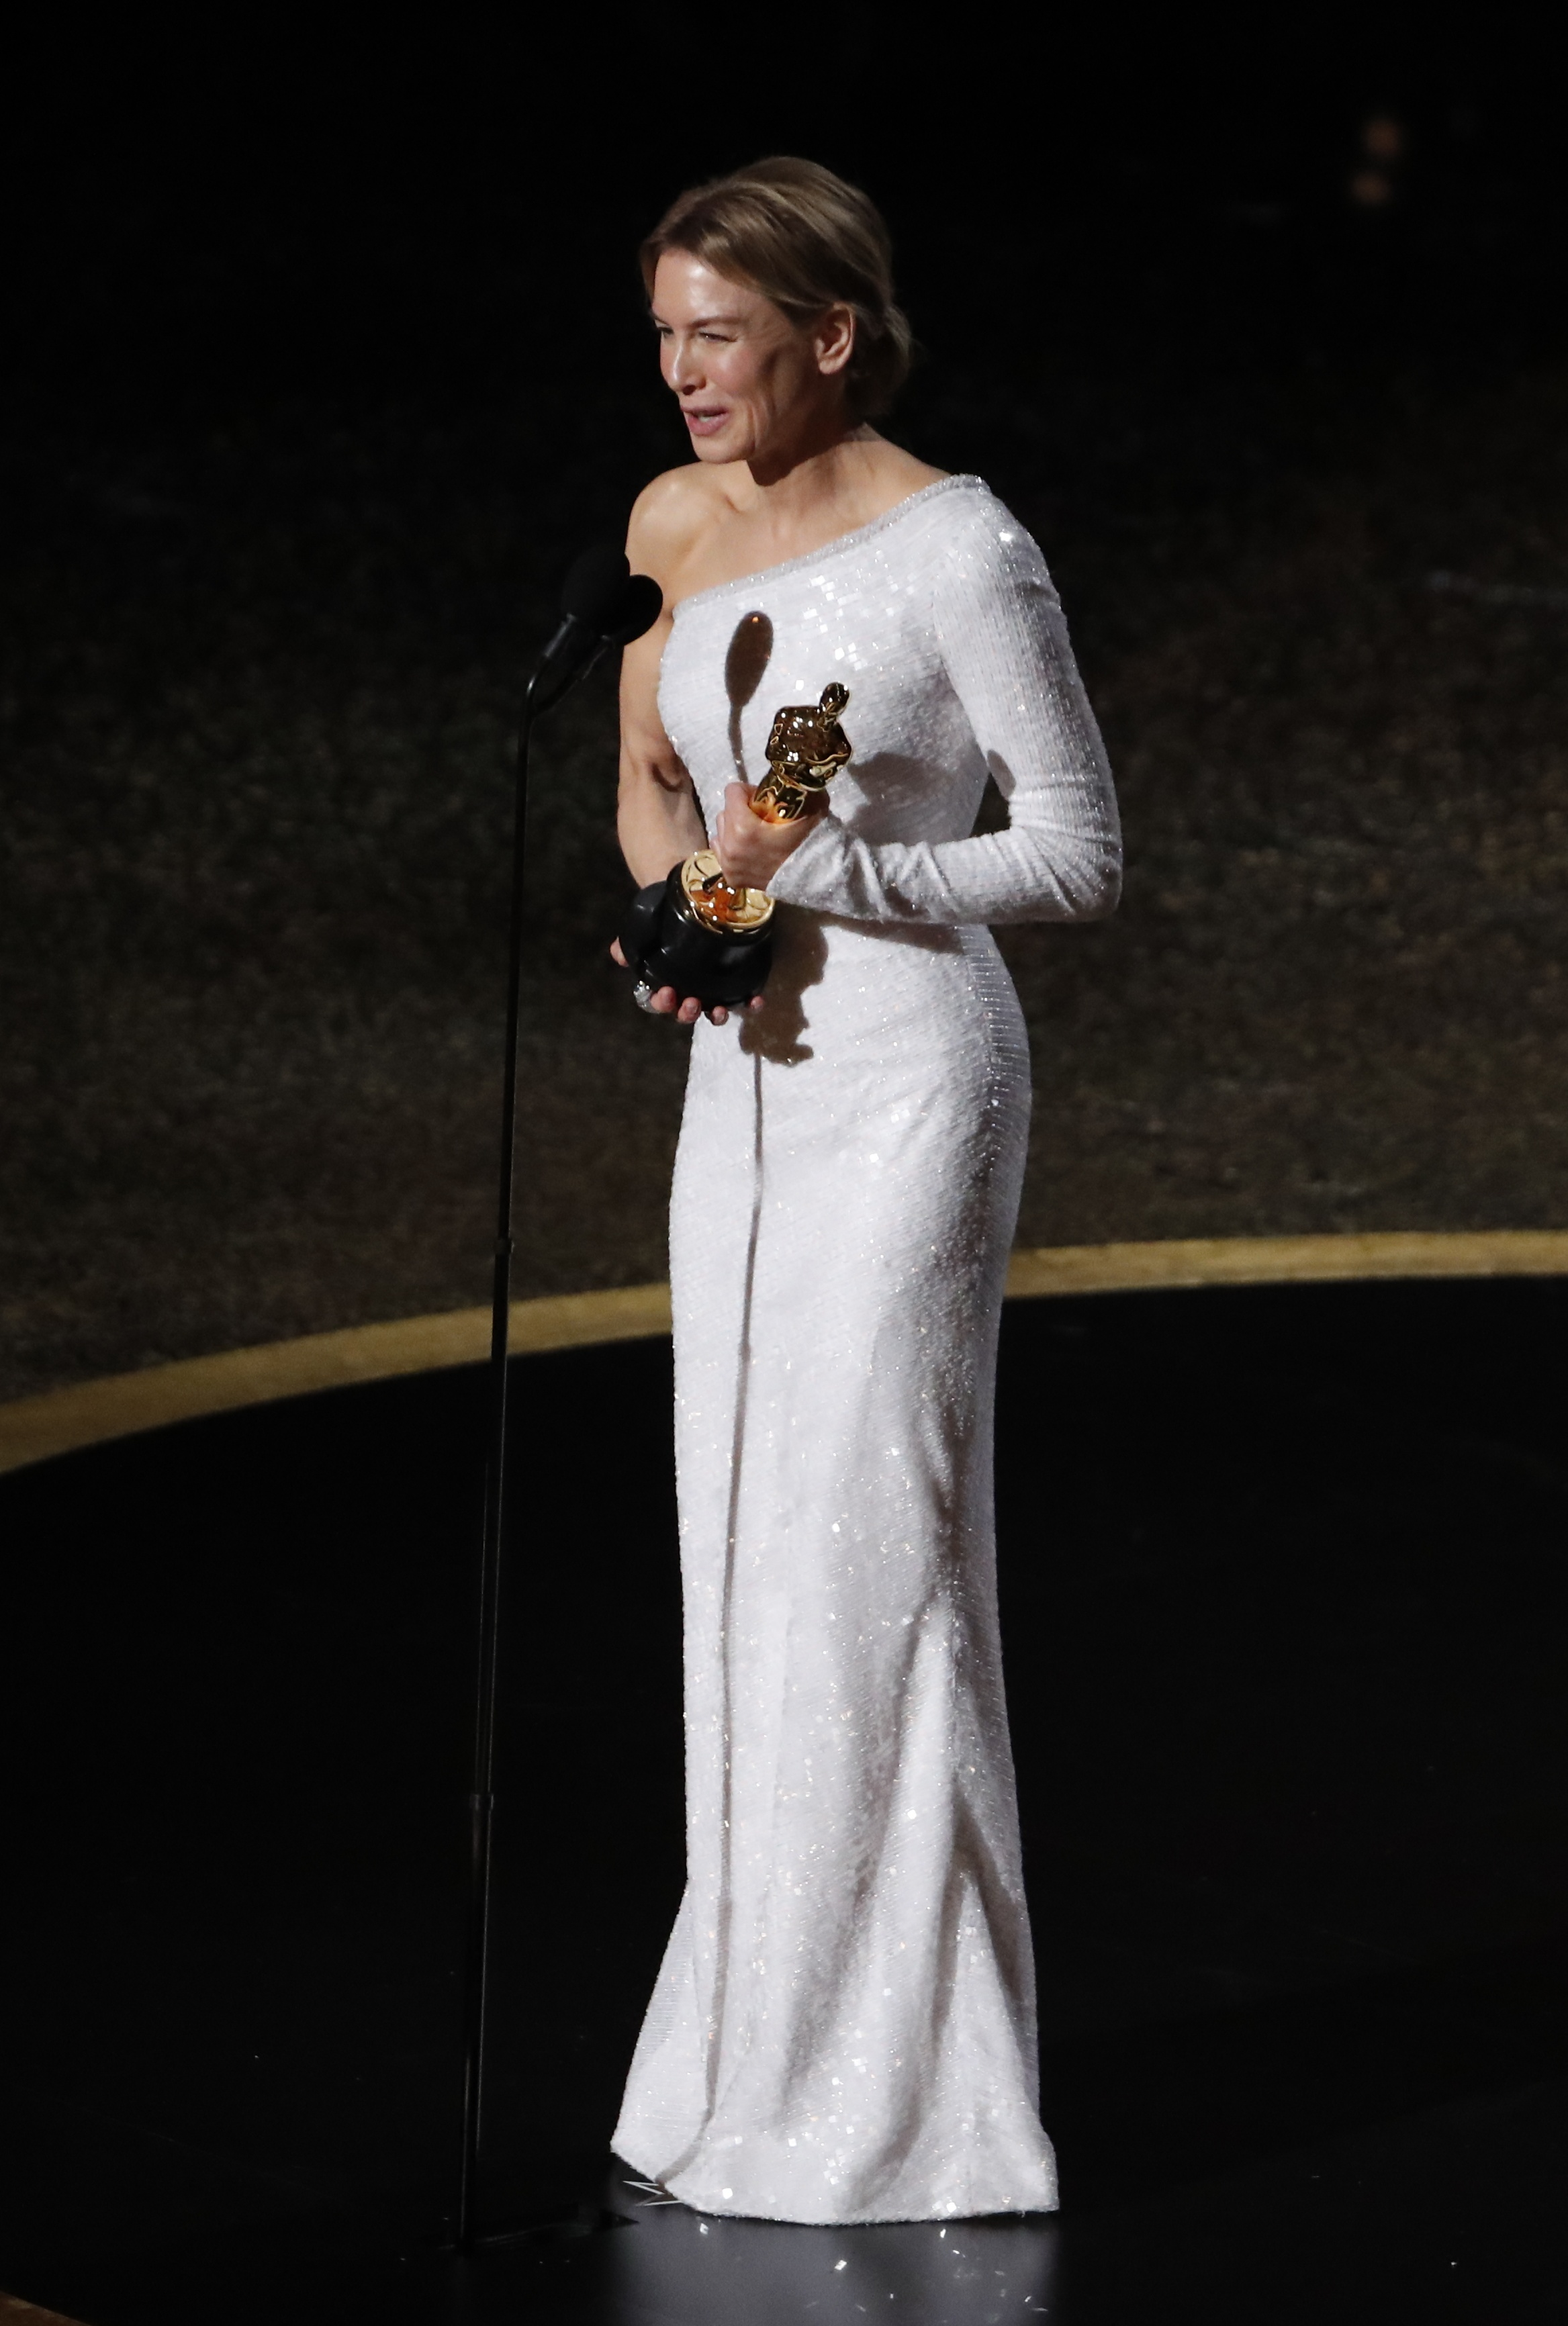 """Renee Zellweger wins the Oscar for Best Actress in """"Judy"""" at the 92nd Academy Awards in Hollywood, Los Angeles, California, U.S., February 9, 2020. REUTERS/Mario Anzuoni"""